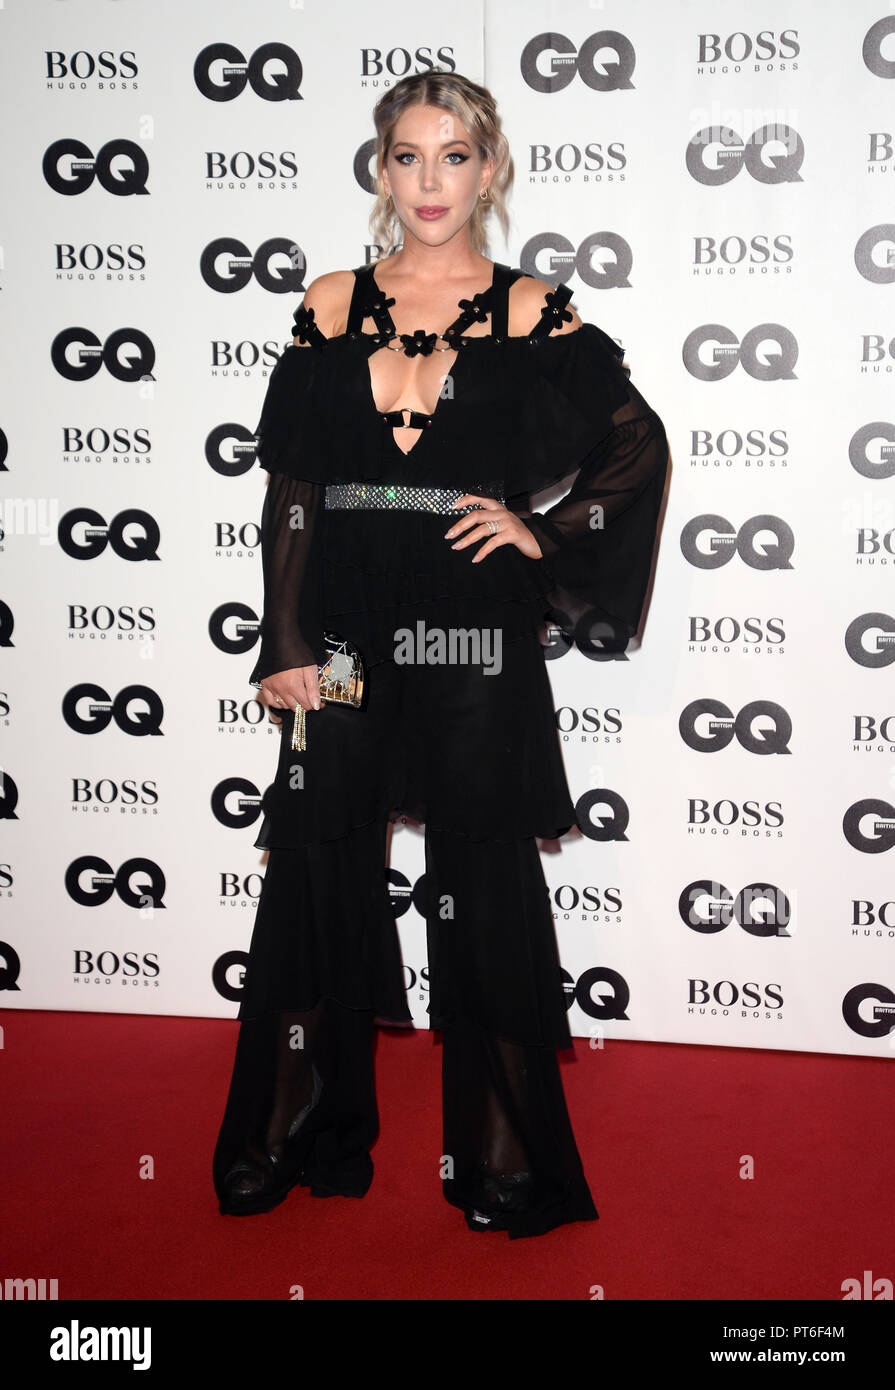 GQ Men Of The Year Awards  Featuring: Katherine Ryan Where: London, United Kingdom When: 05 Sep 2018 Credit: Tony Oudot/WENN - Stock Image